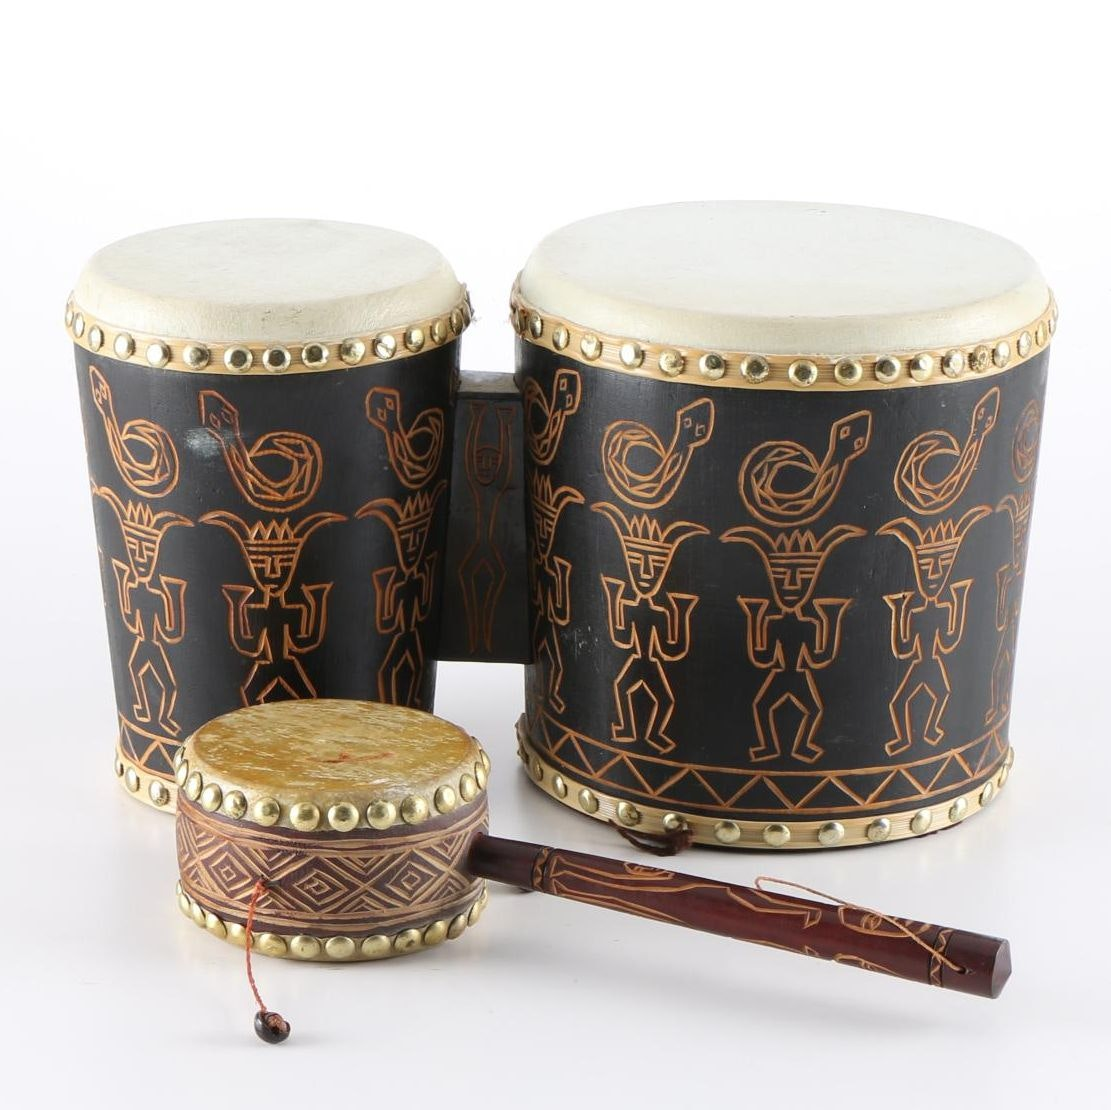 African-Inspired Bongos and Hand-Carved Monkey Drum